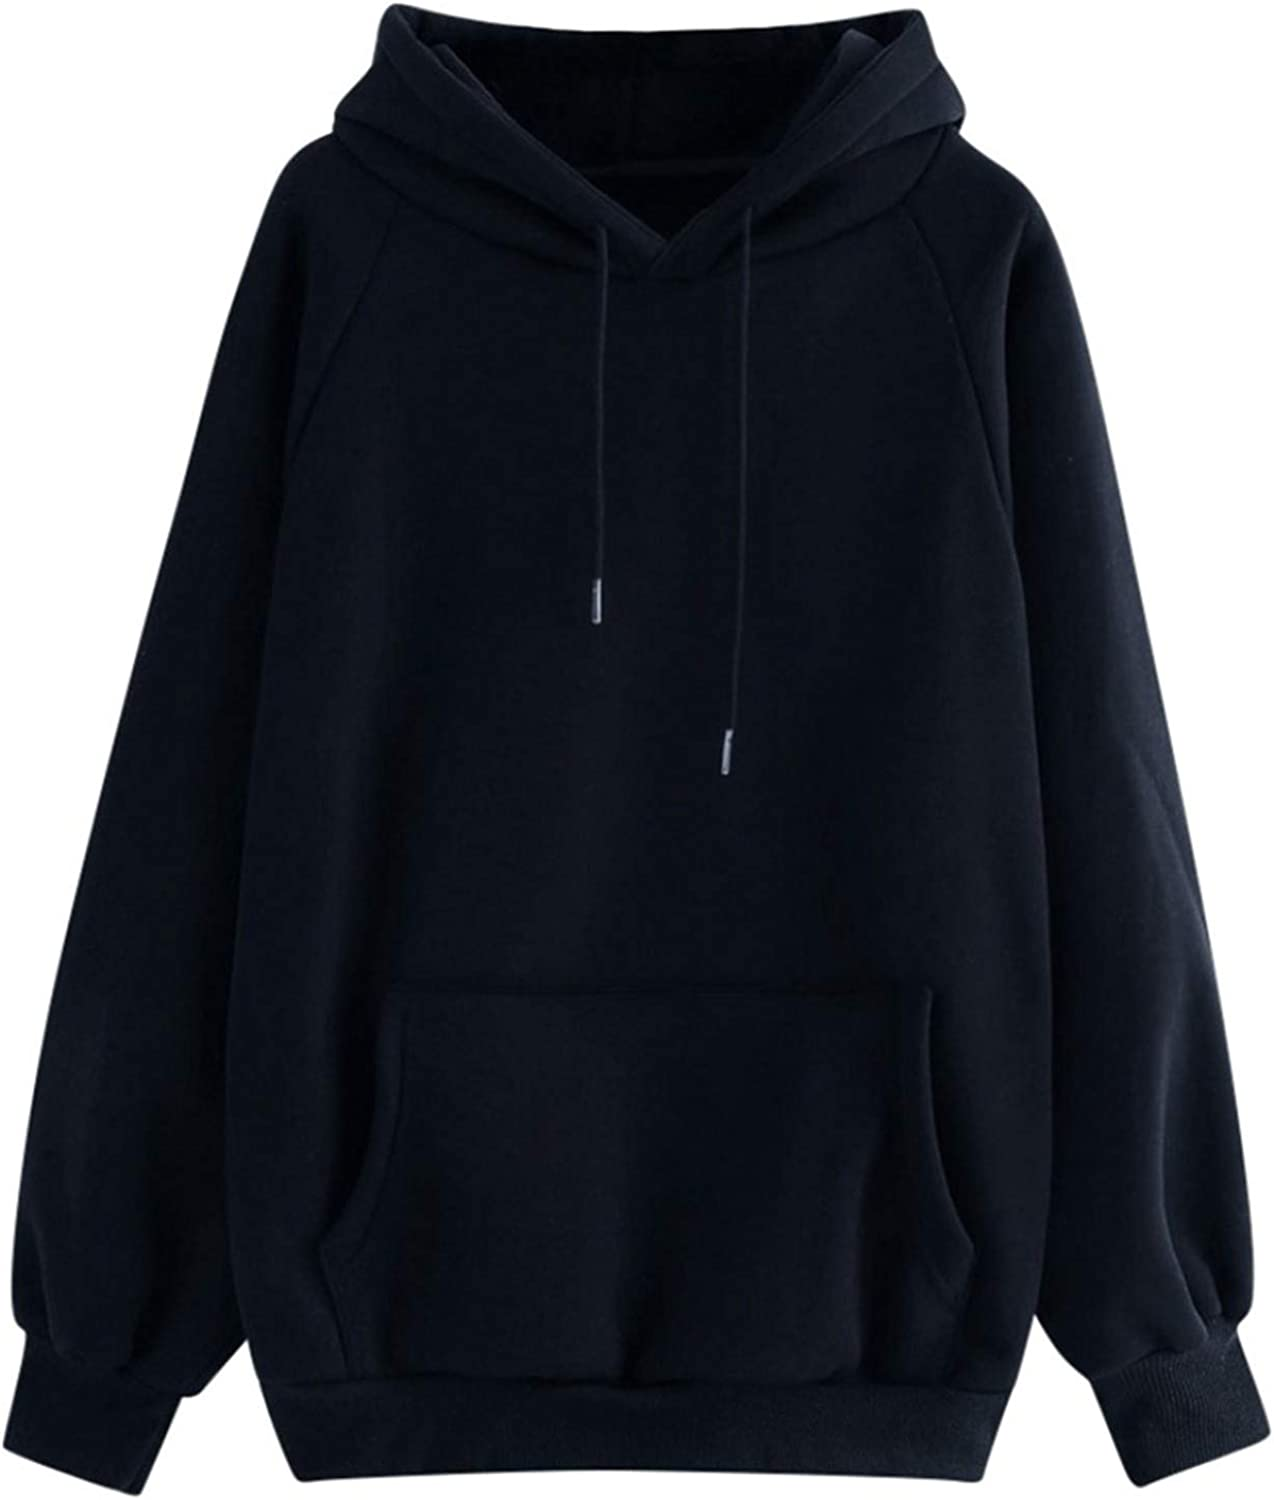 Women's Sweatshirt Fashion Casual Solid Color Long Sleeve Drawstring with Pocket Pullover Gift Hoodie Sweatshirt Tops